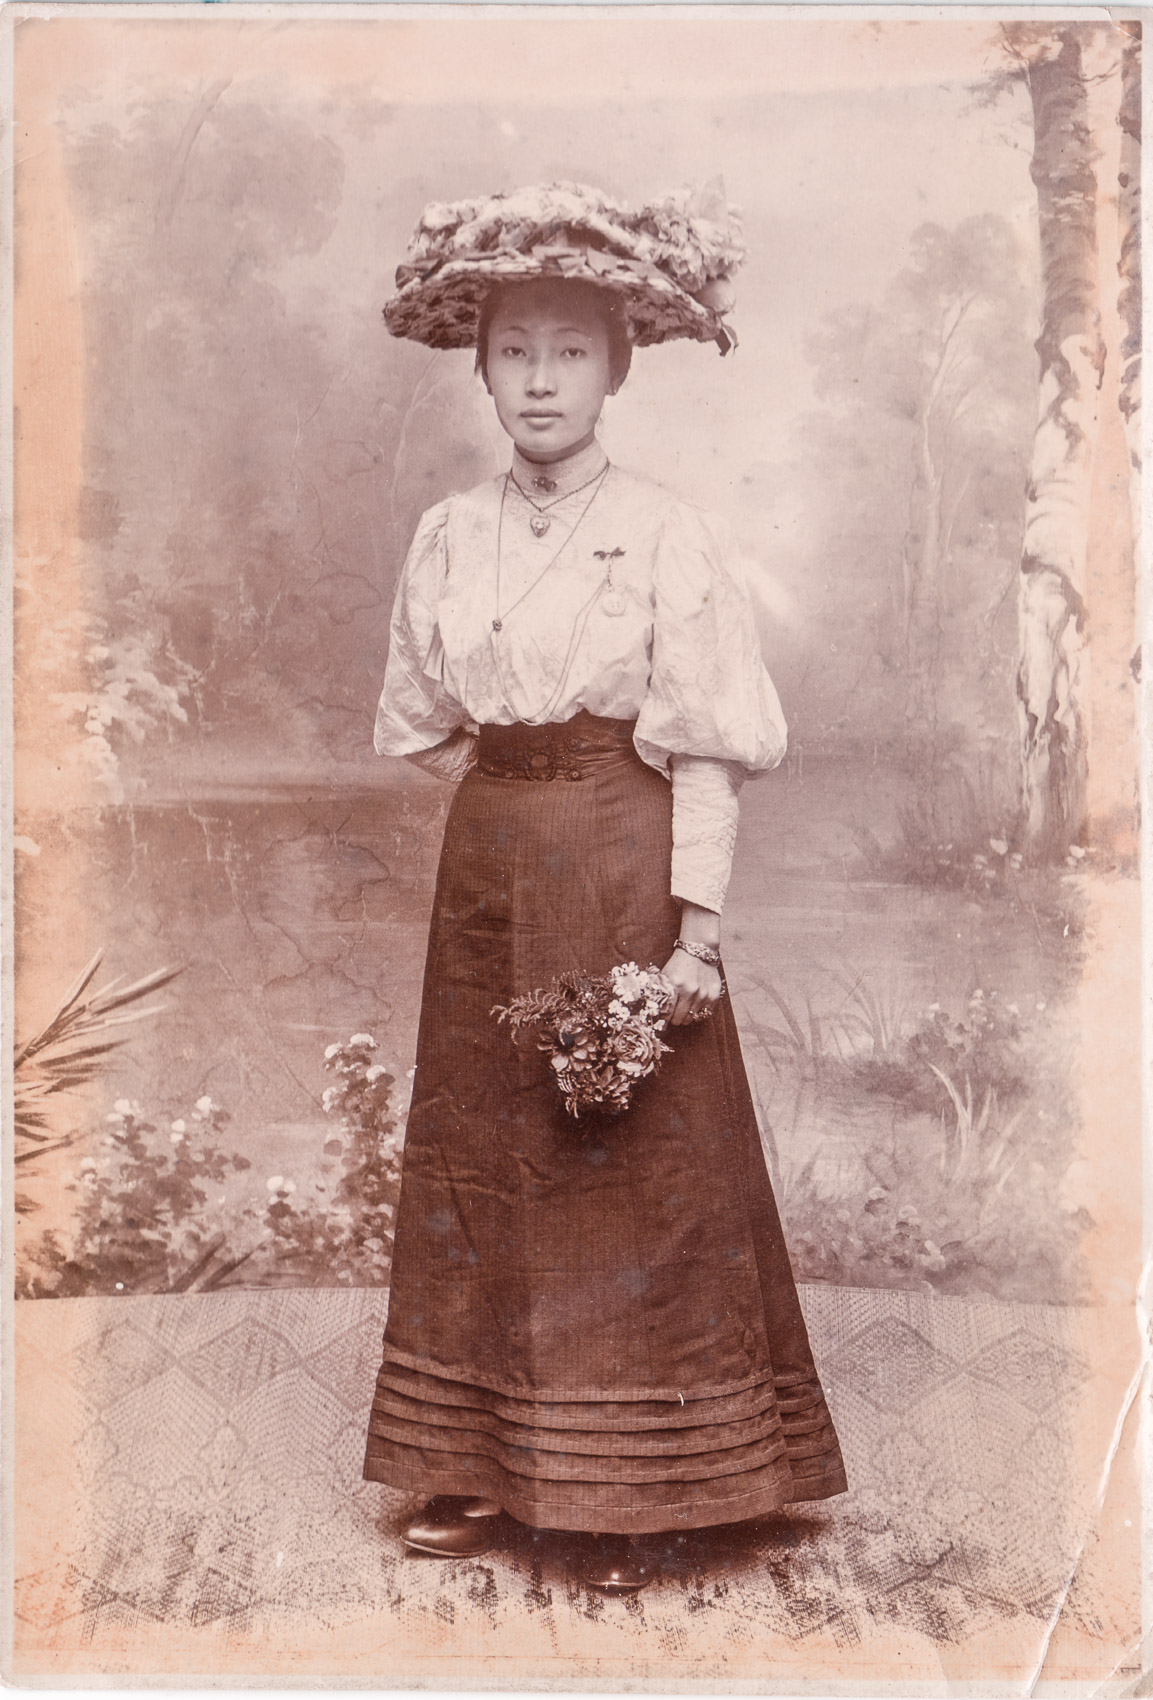 Lie Giok Lin on Dutch Dress, circa 1890s.